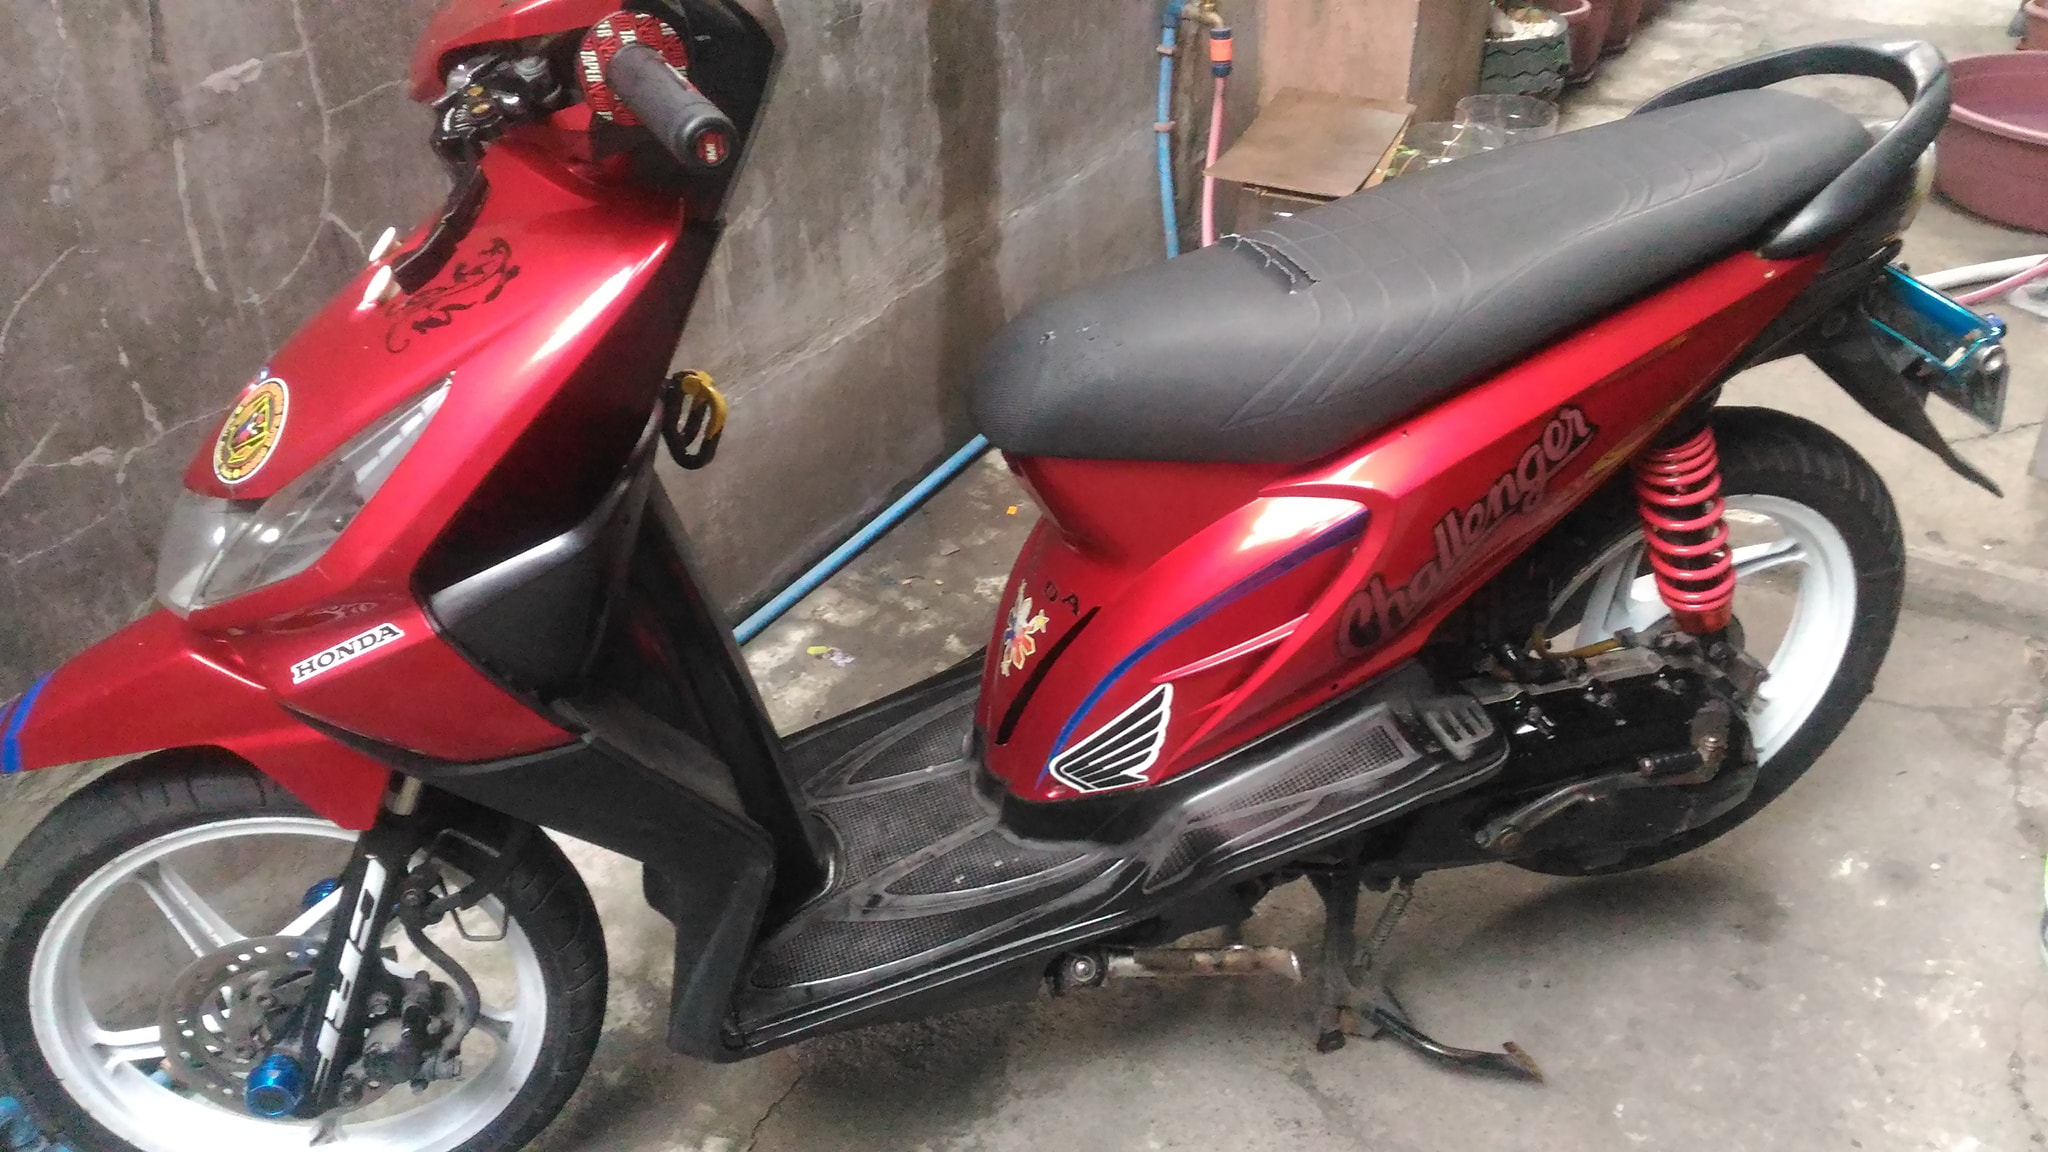 Honda beat photo